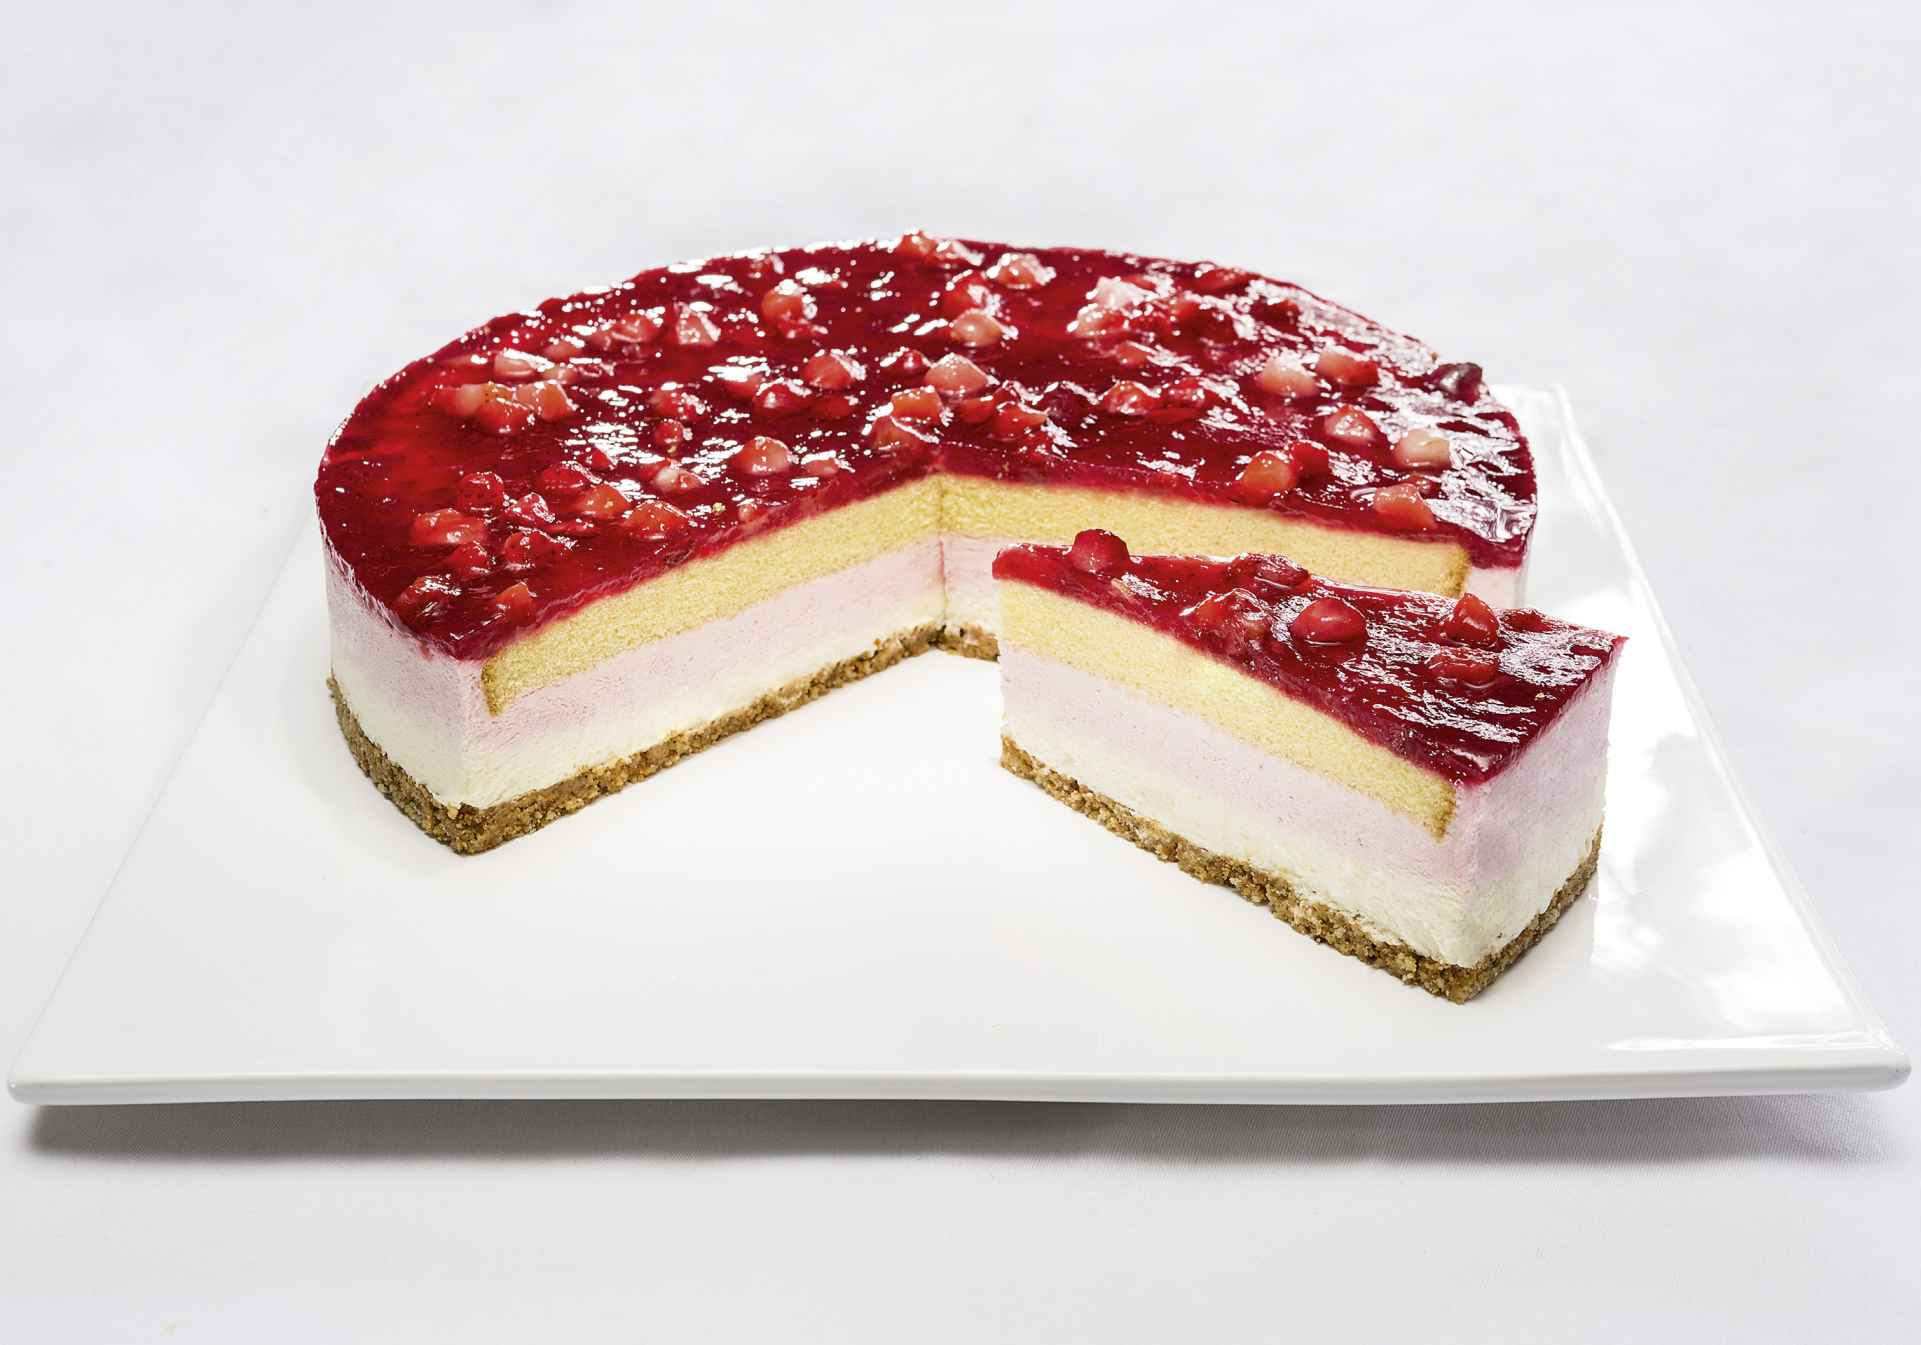 Cream cheese gateau with strawberries